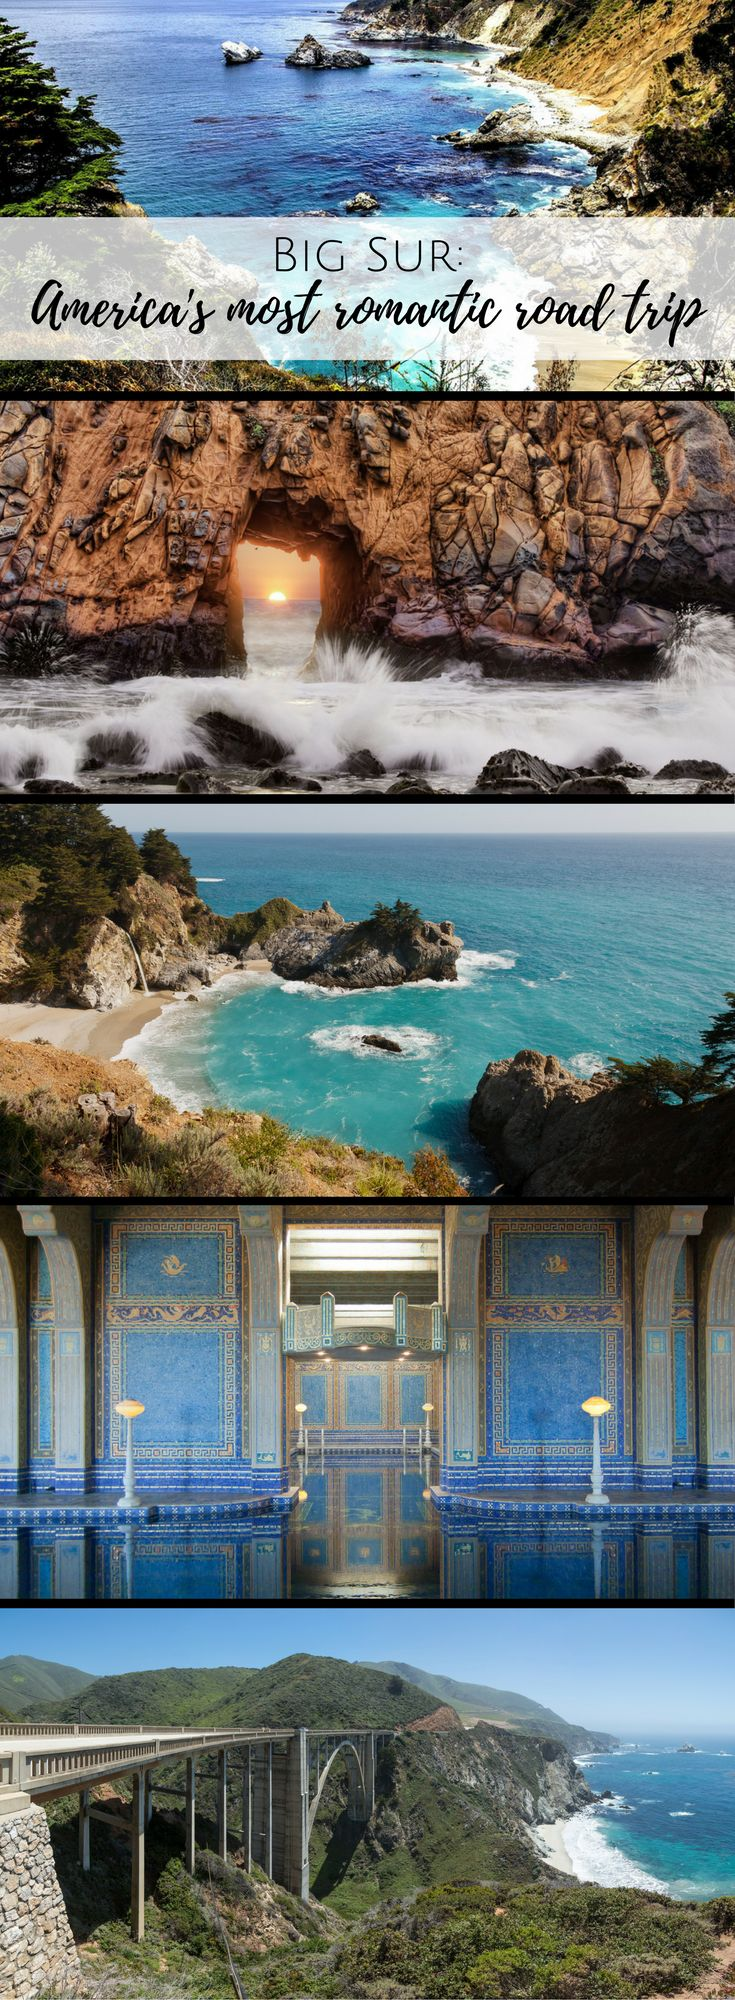 Fall in love with the California coast!